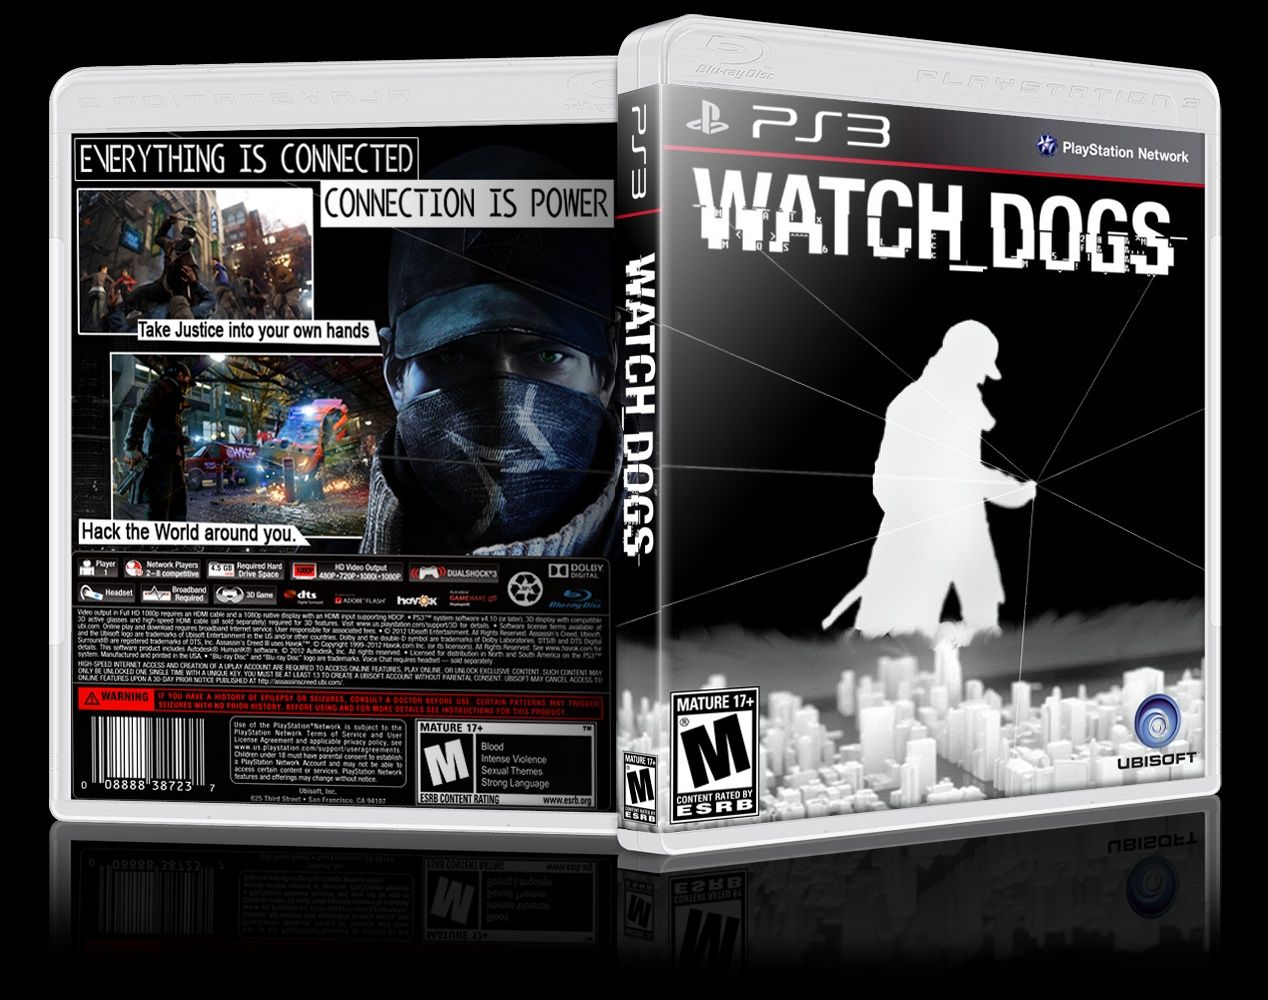 Watch Dogs PlayStation 3 Box Art Cover By Ausman101